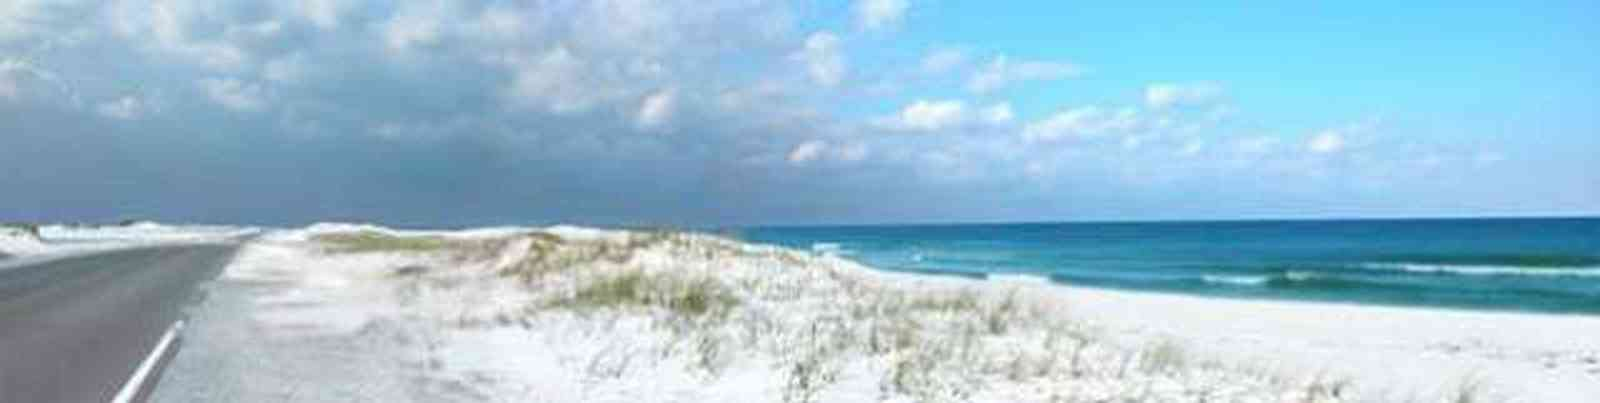 Pensacola-Beach:-Road_11.jpg:  gulf of mexico, santa rosa island, beach road, ,